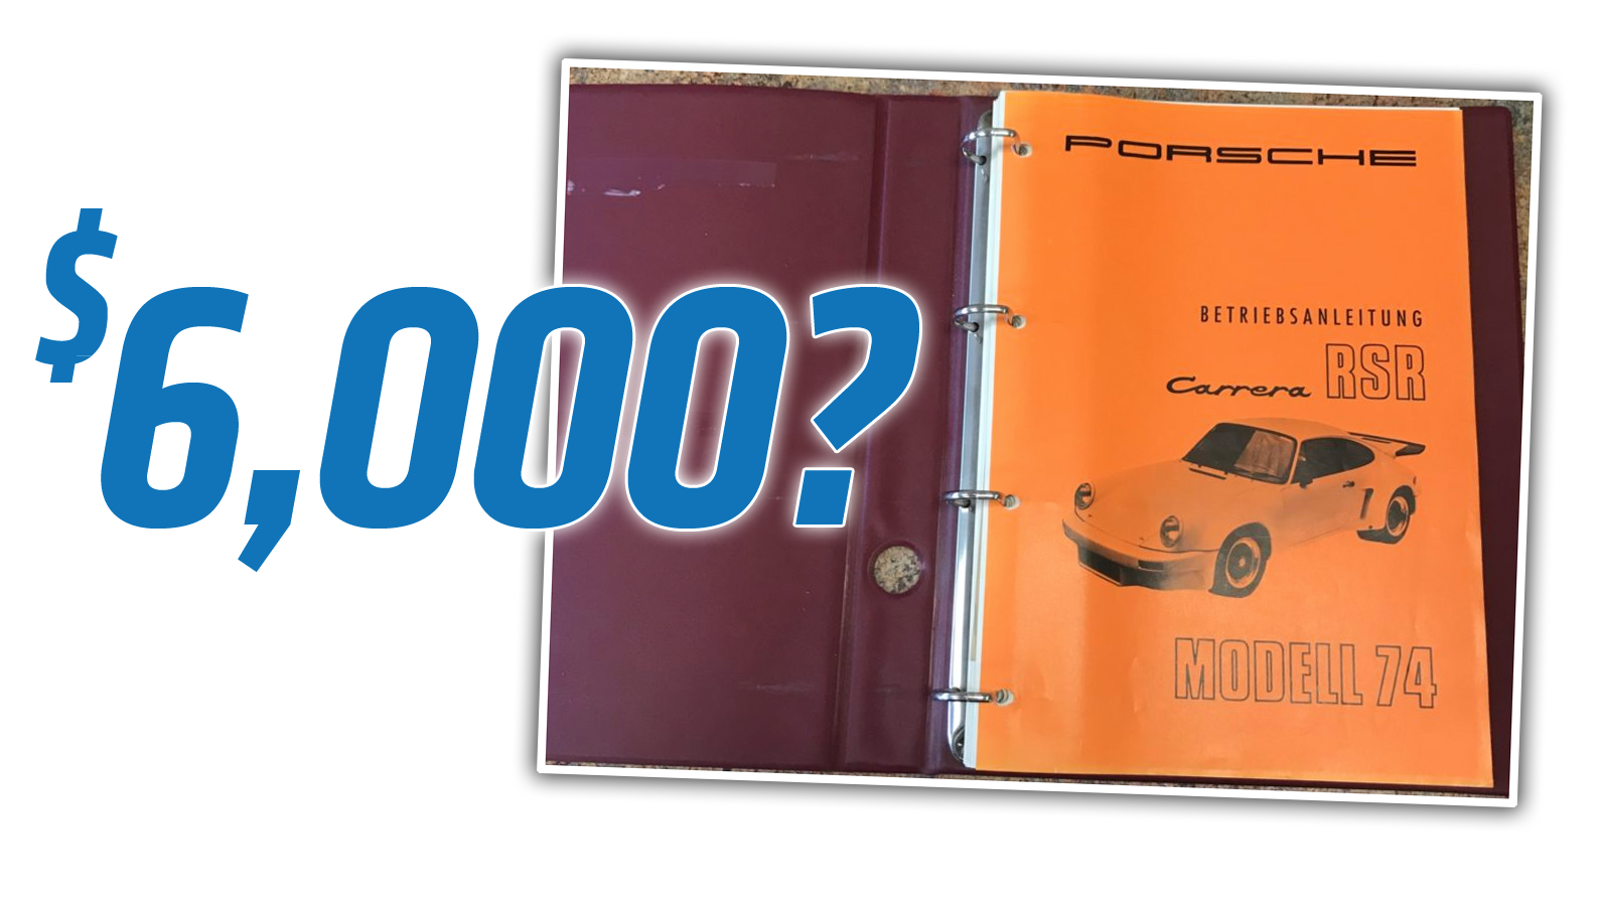 A Porsche 911 3.0 RSR Manual Just Sold for $6,000 Because Everything Is Really Stupid Now